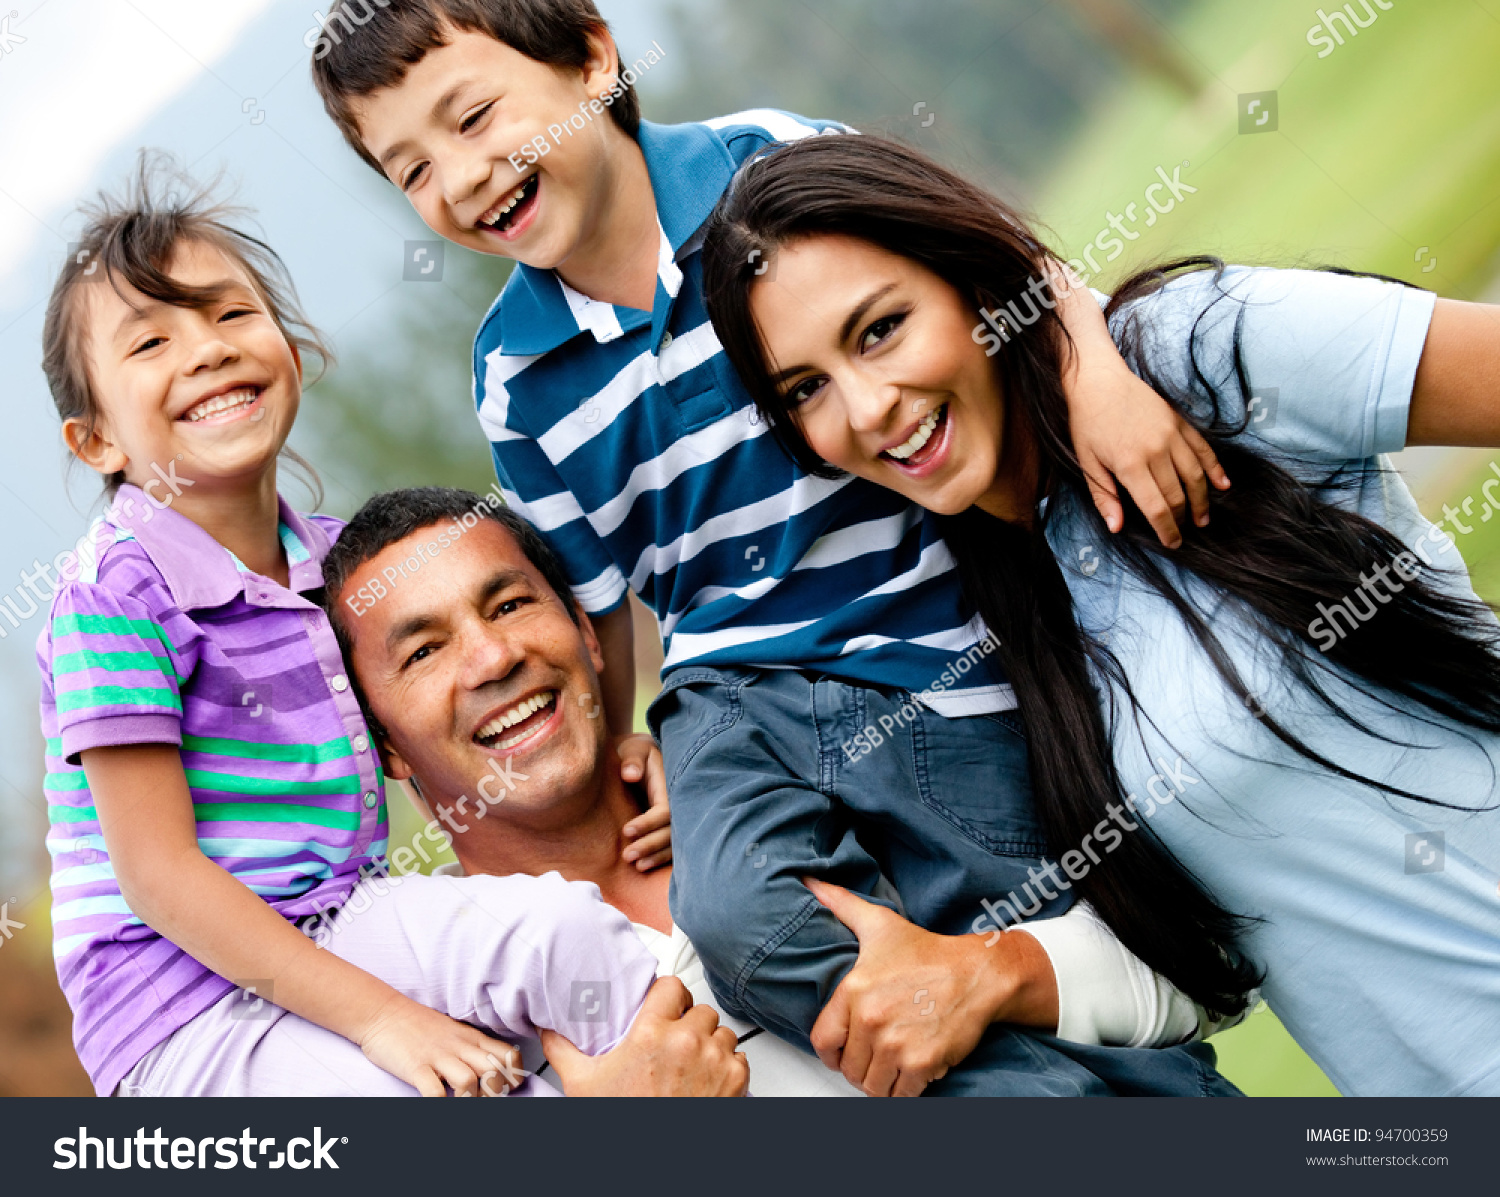 relationship with family members essay » healthy relationships and families healthy family relationships help all members of a family feel safe and connected to one another.